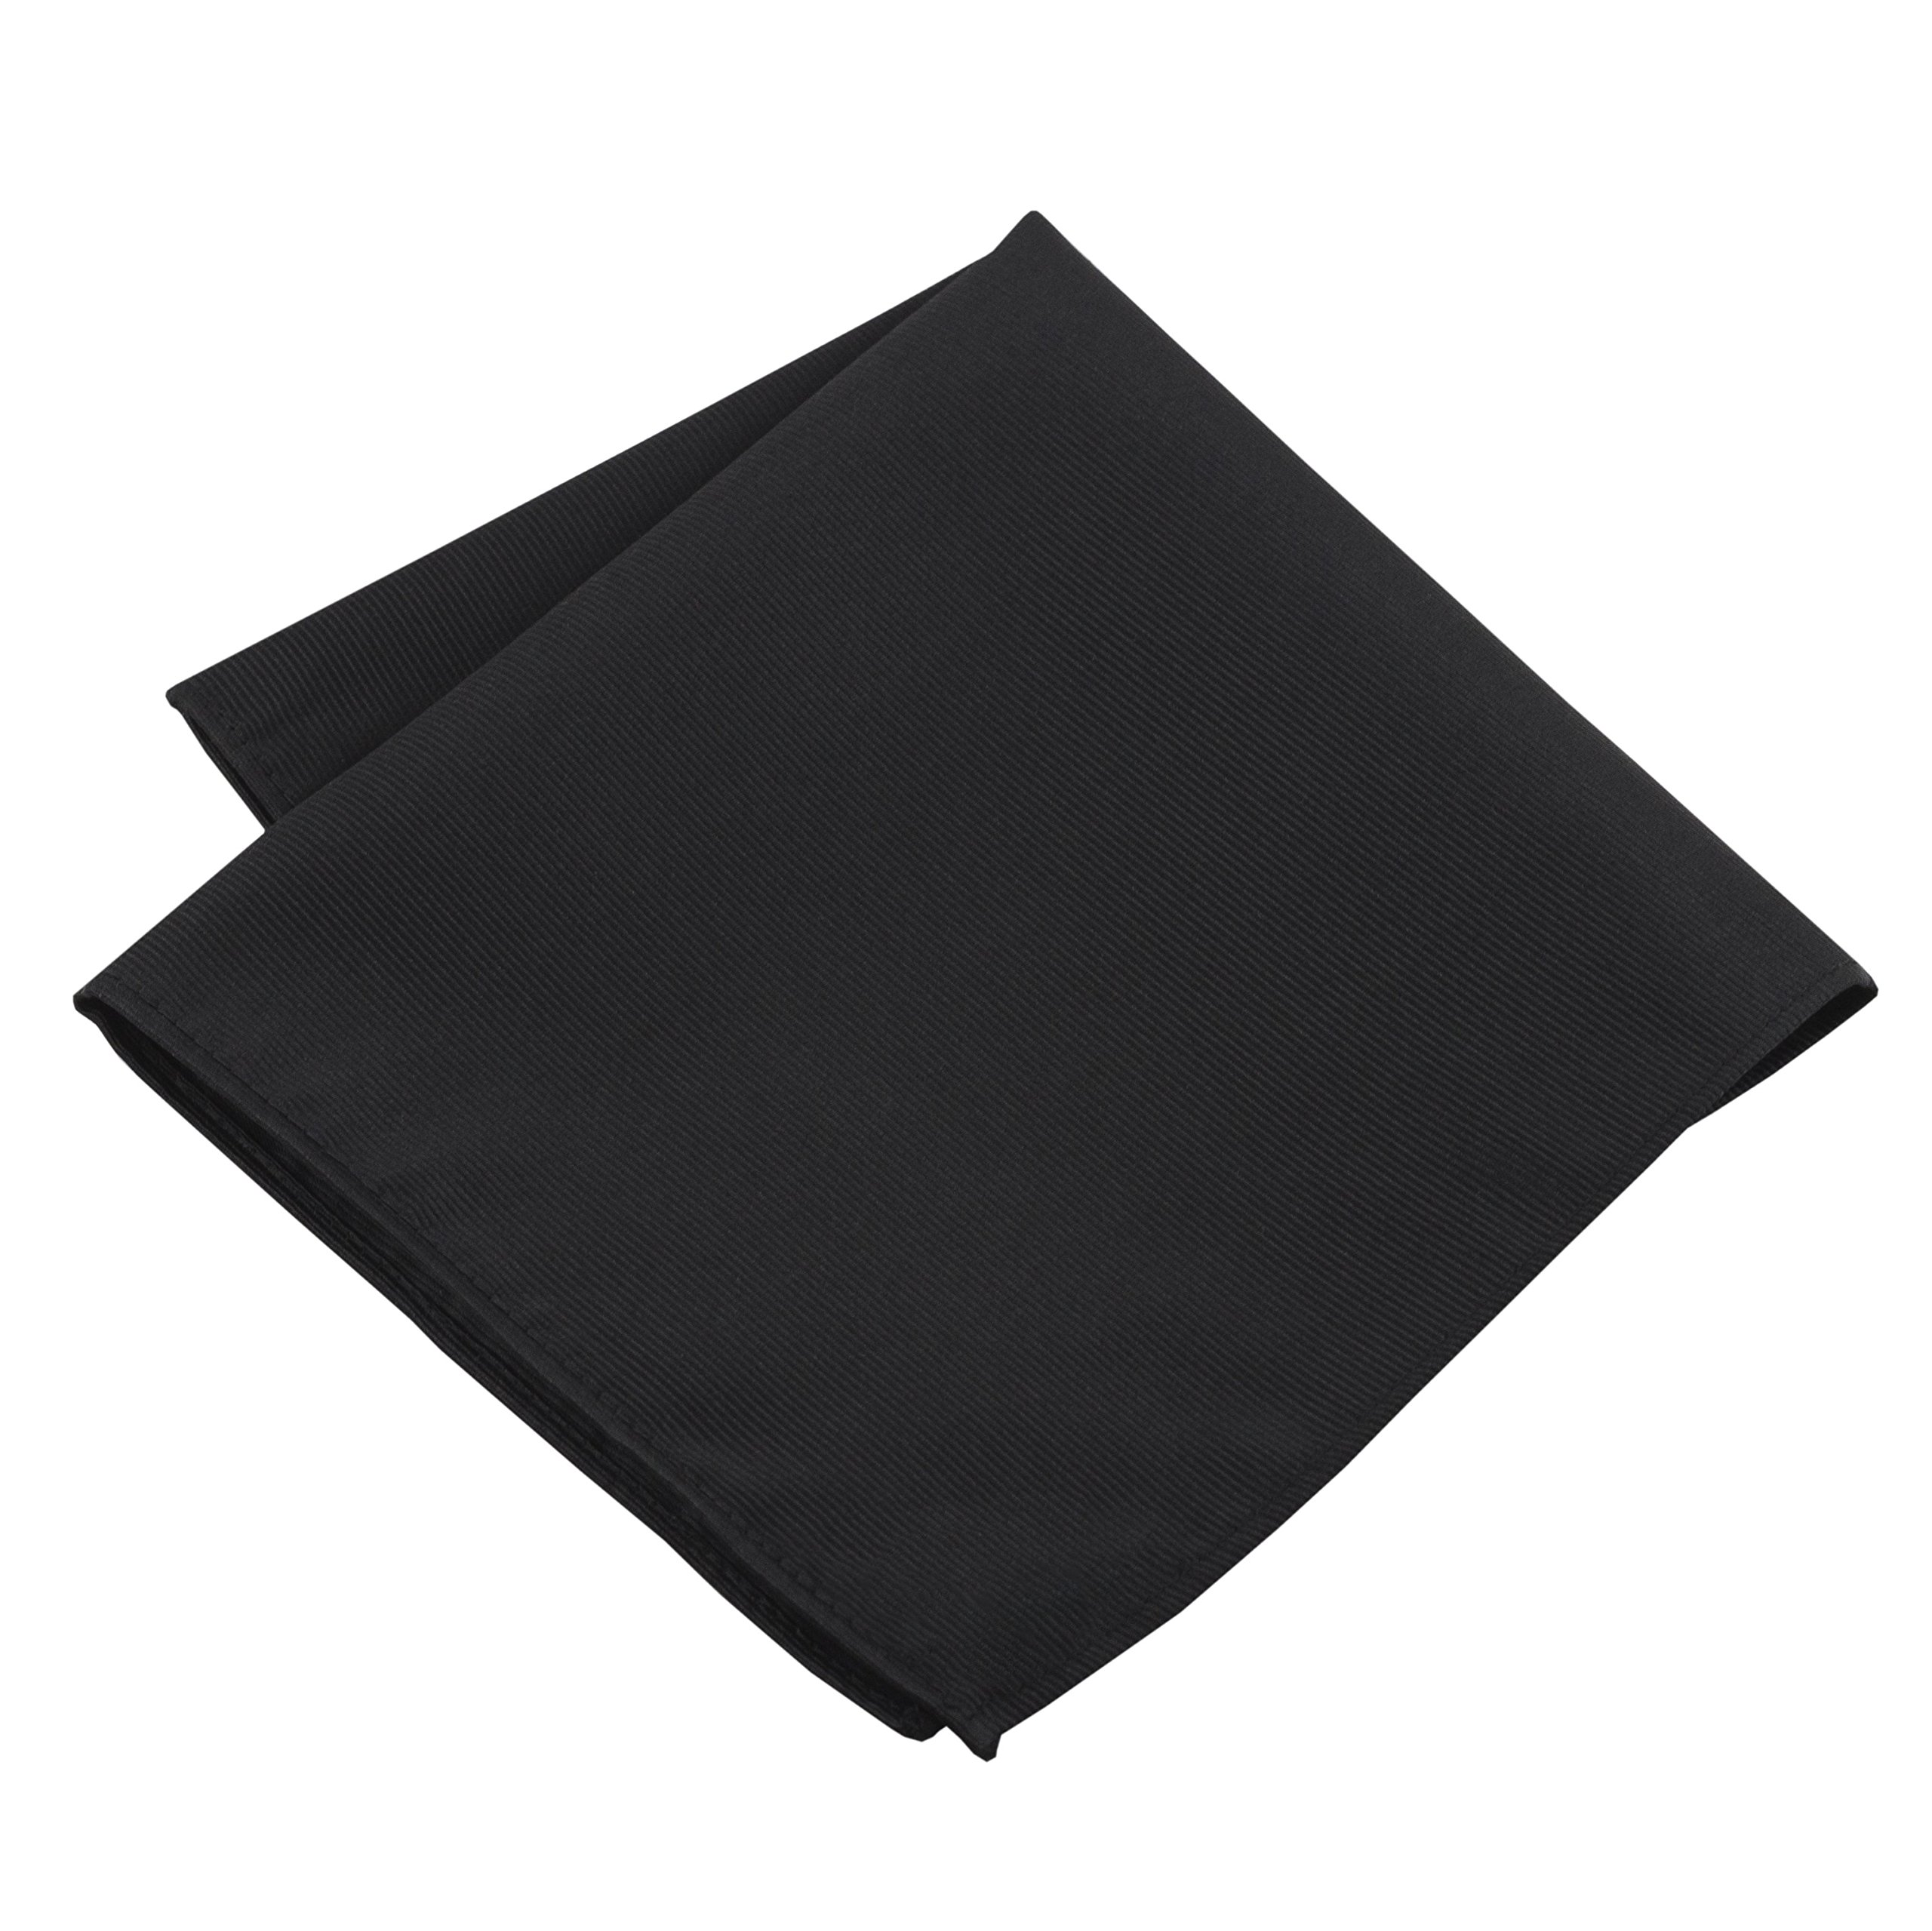 100% Silk Woven Black Pocket Square Handkerchief by John William